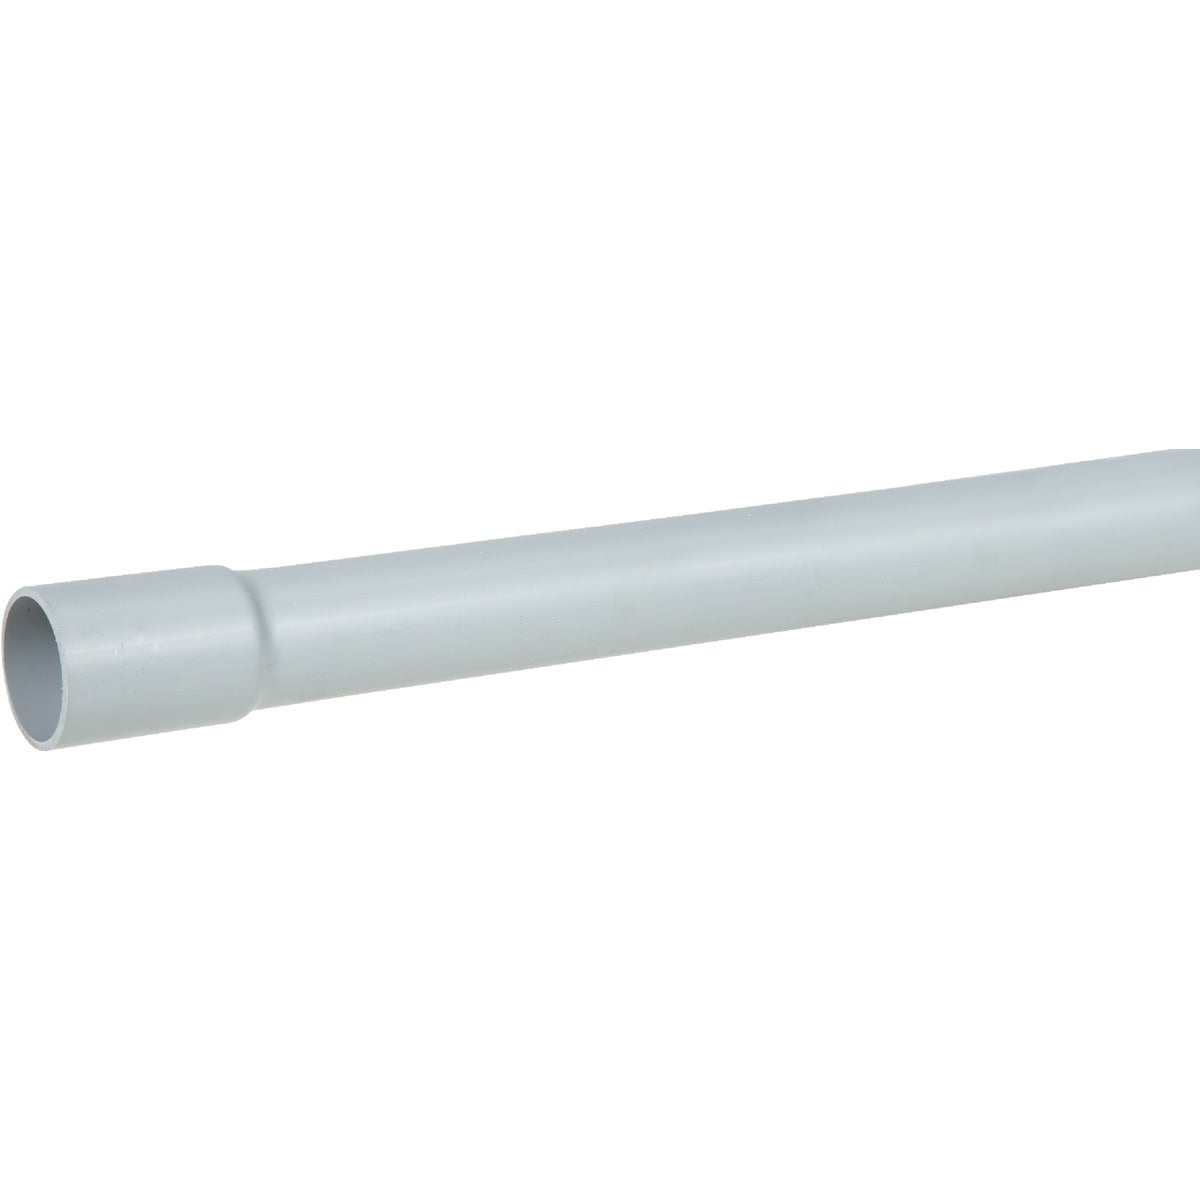 "1-1/2"" SCH40 10' CONDUIT - 49010-010 by Prime Conduit"